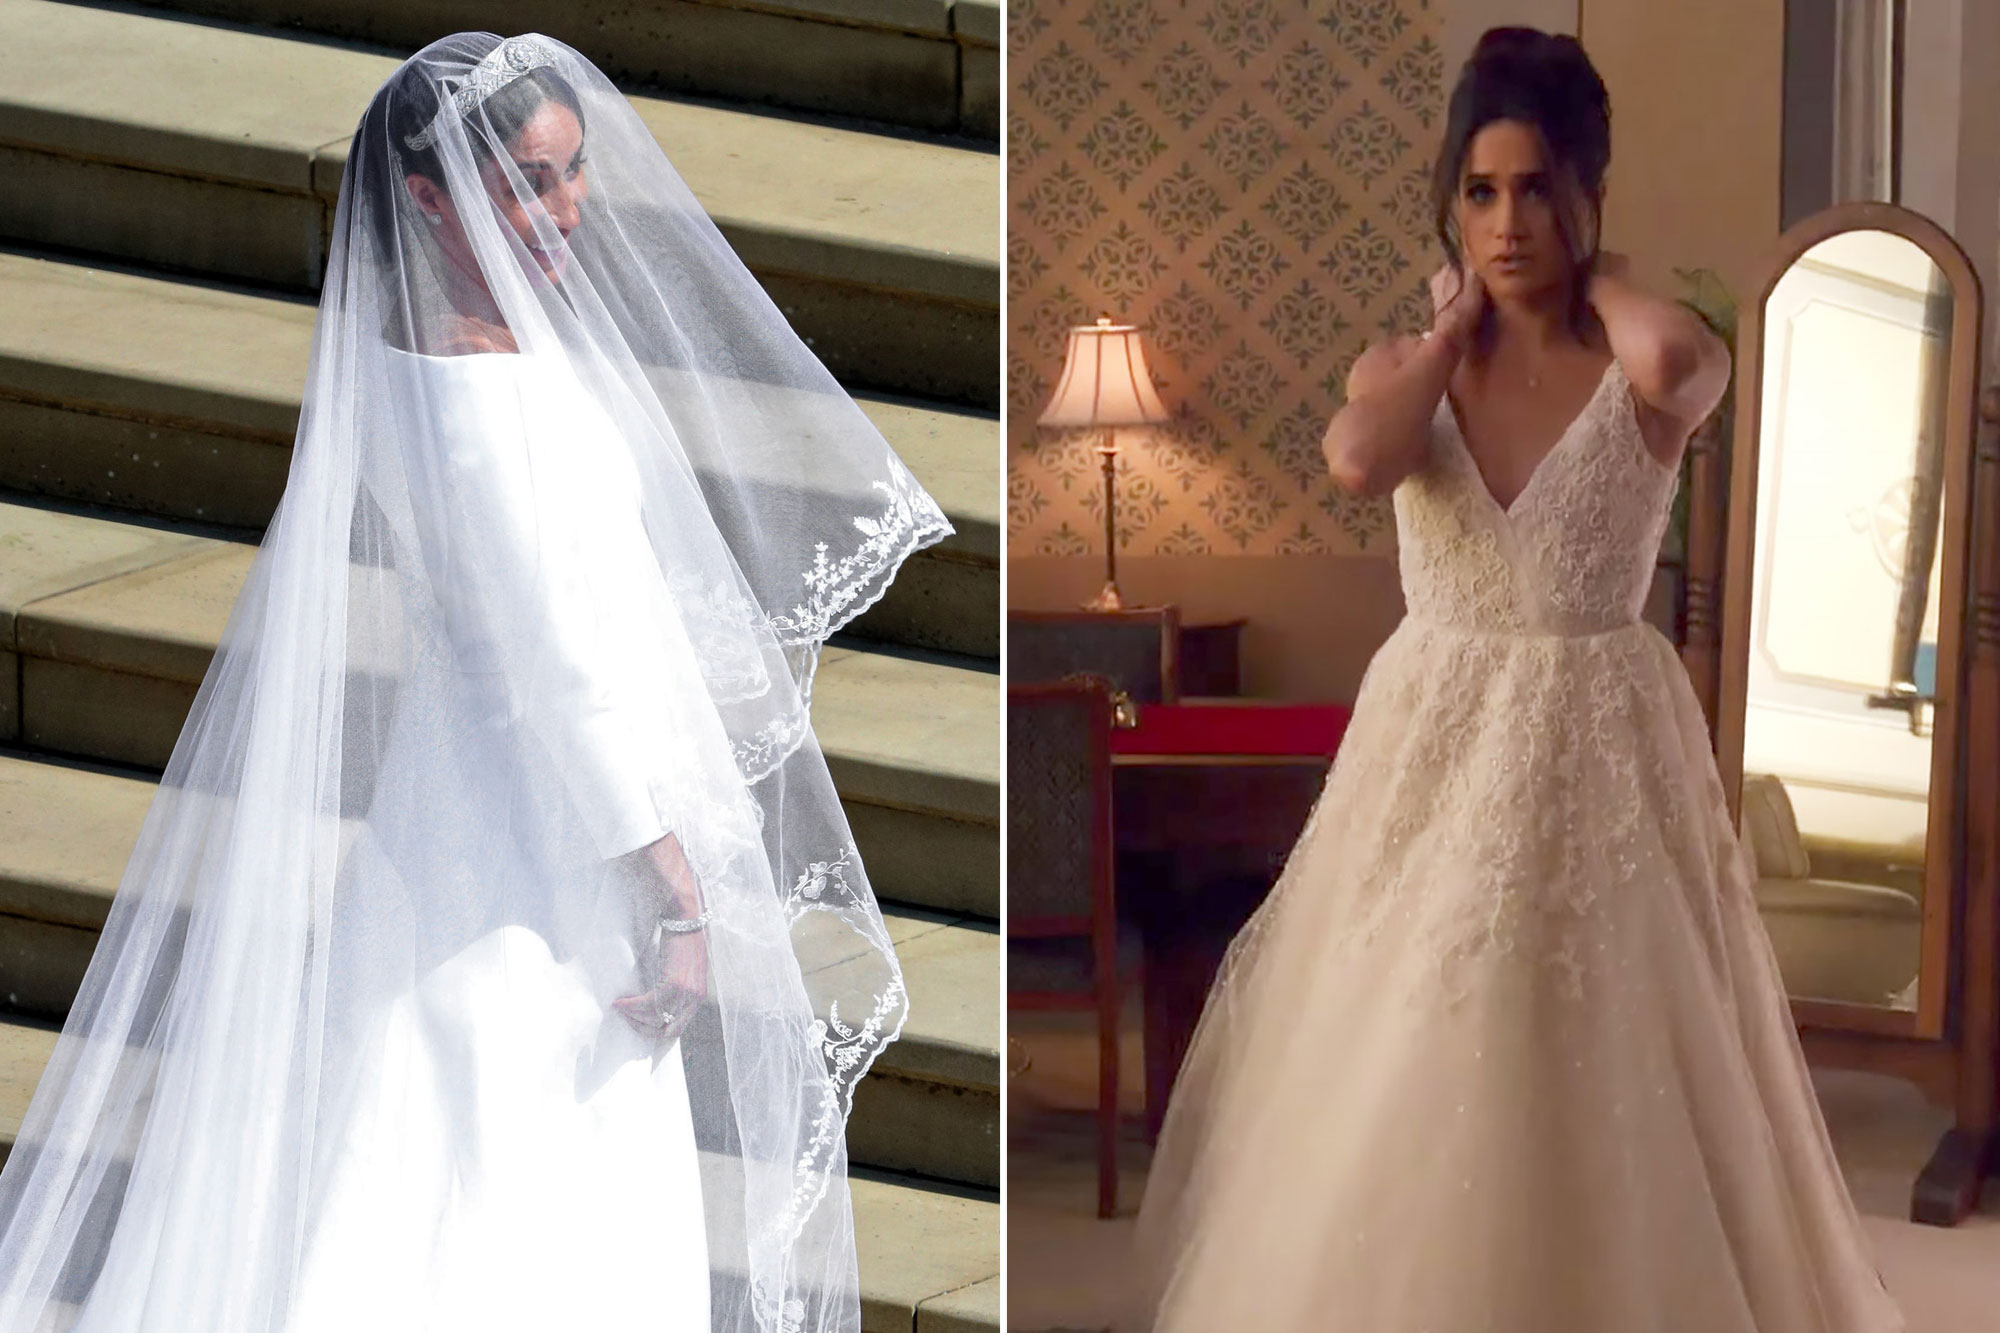 meghan markle comparing her royal wedding dress to suits dress people com her royal wedding dress to suits dress